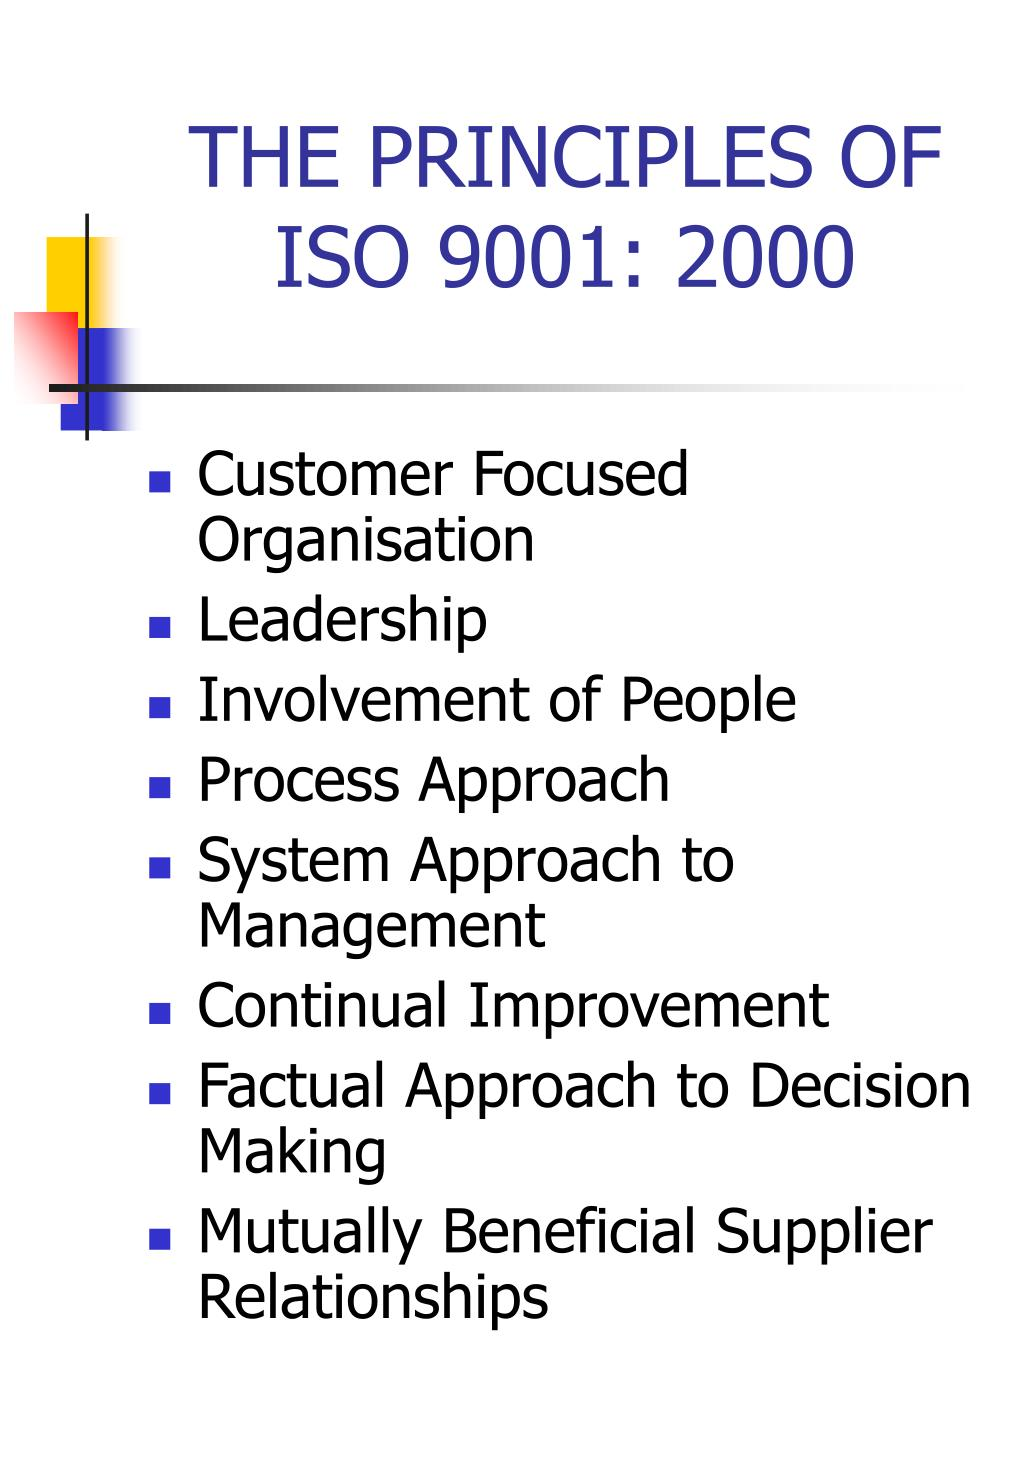 THE PRINCIPLES OF ISO 9001: 2000